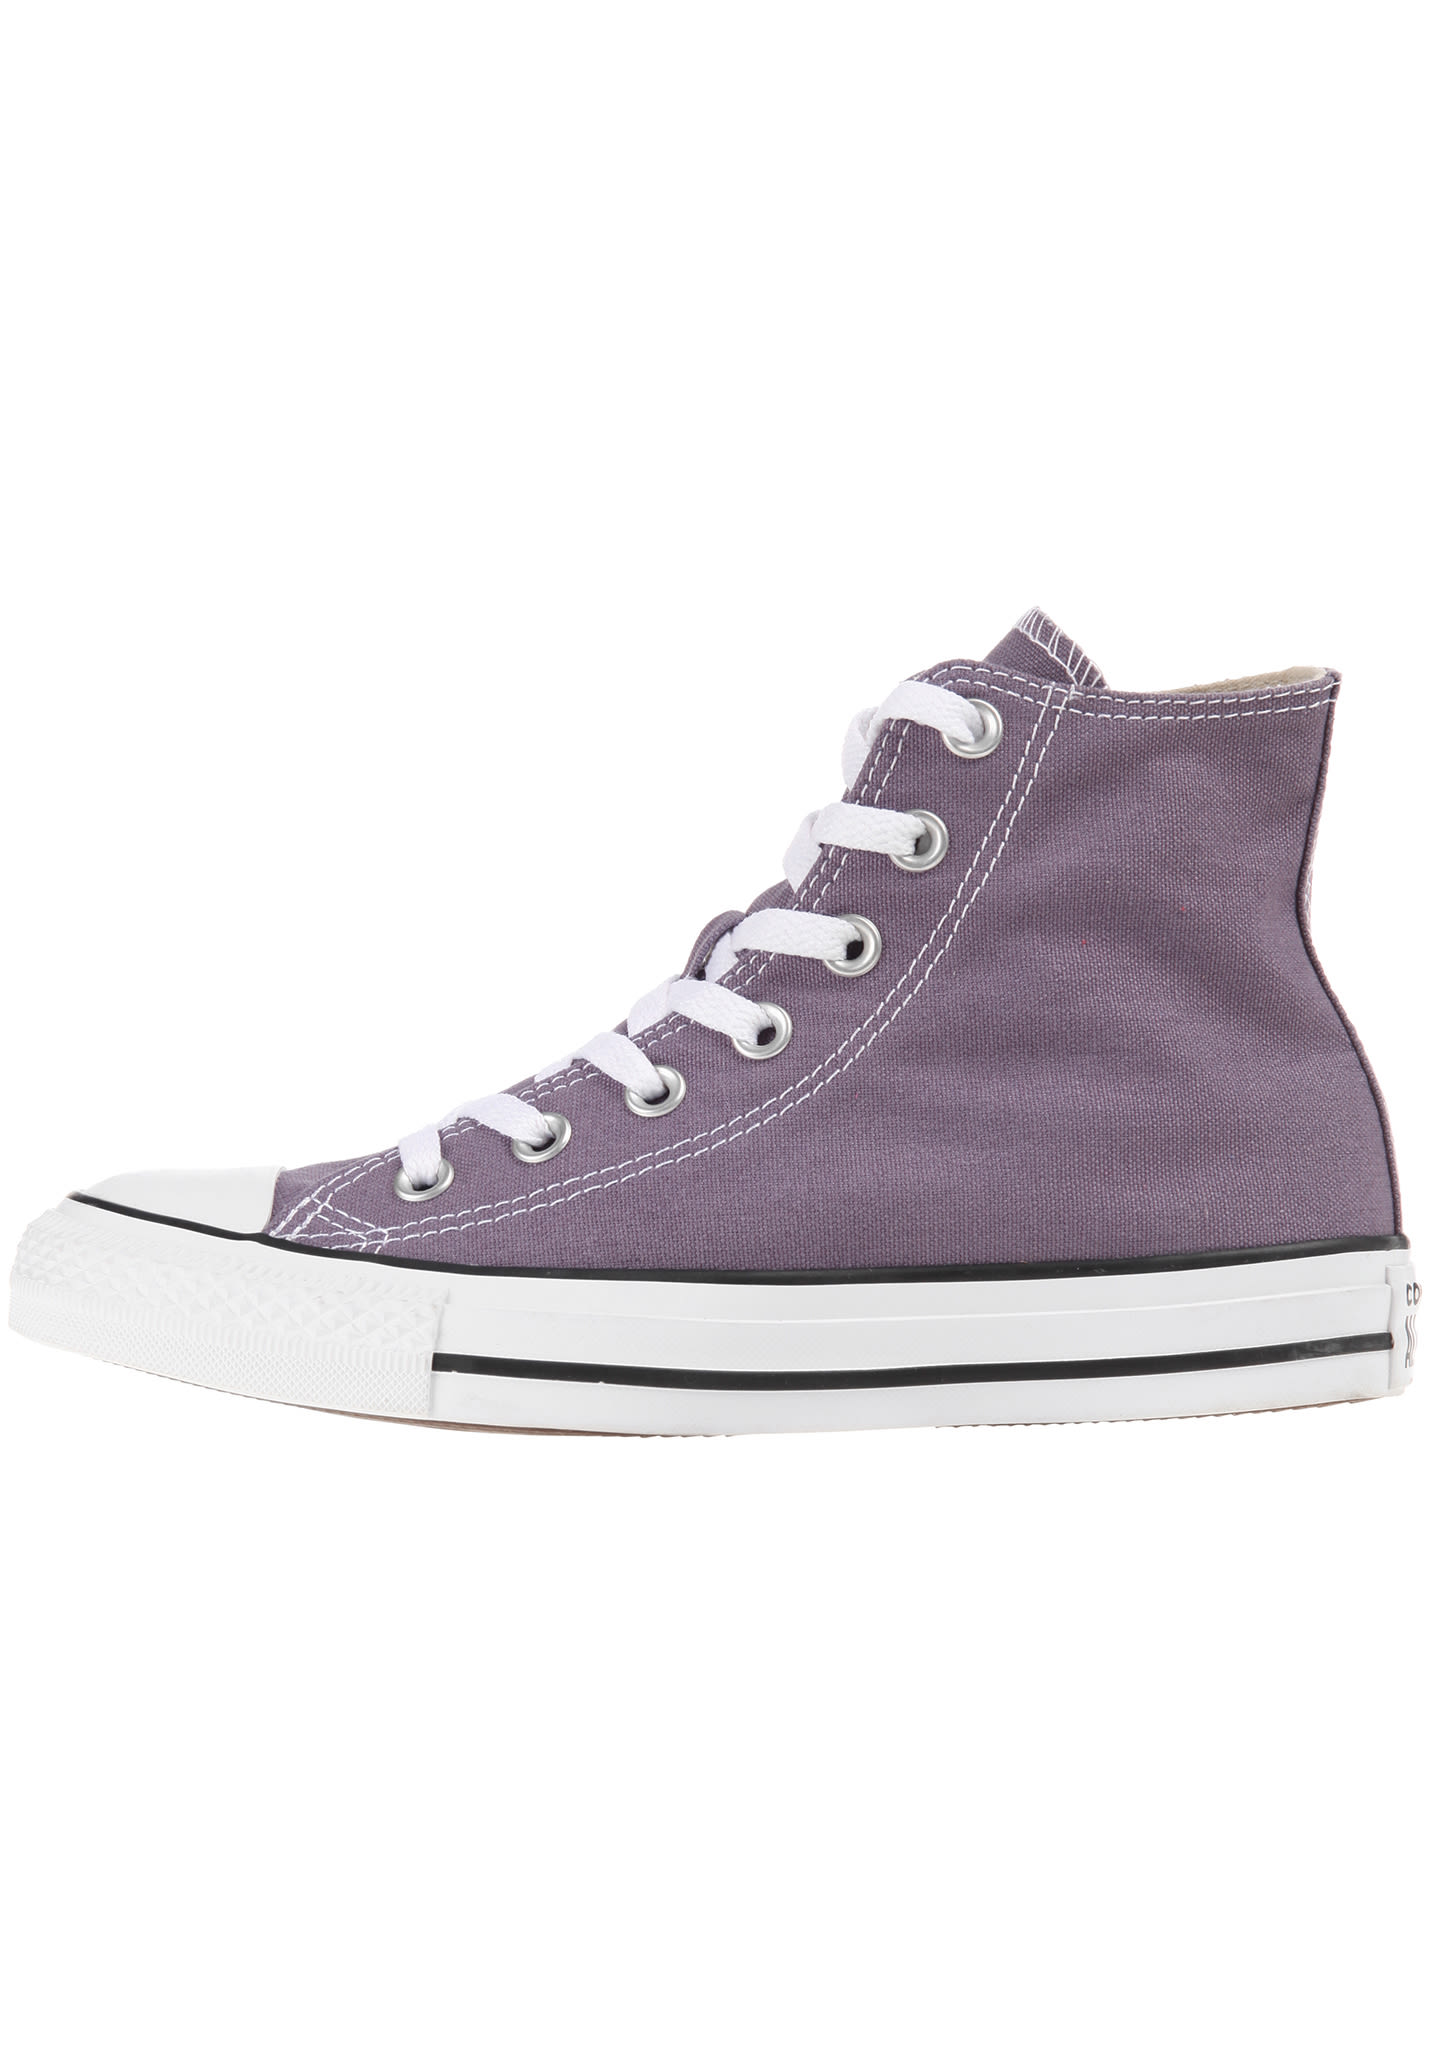 9140f3722ee3d0 Converse Chuck Taylor All Star Hi - Sneakers for Women - Purple - Planet  Sports